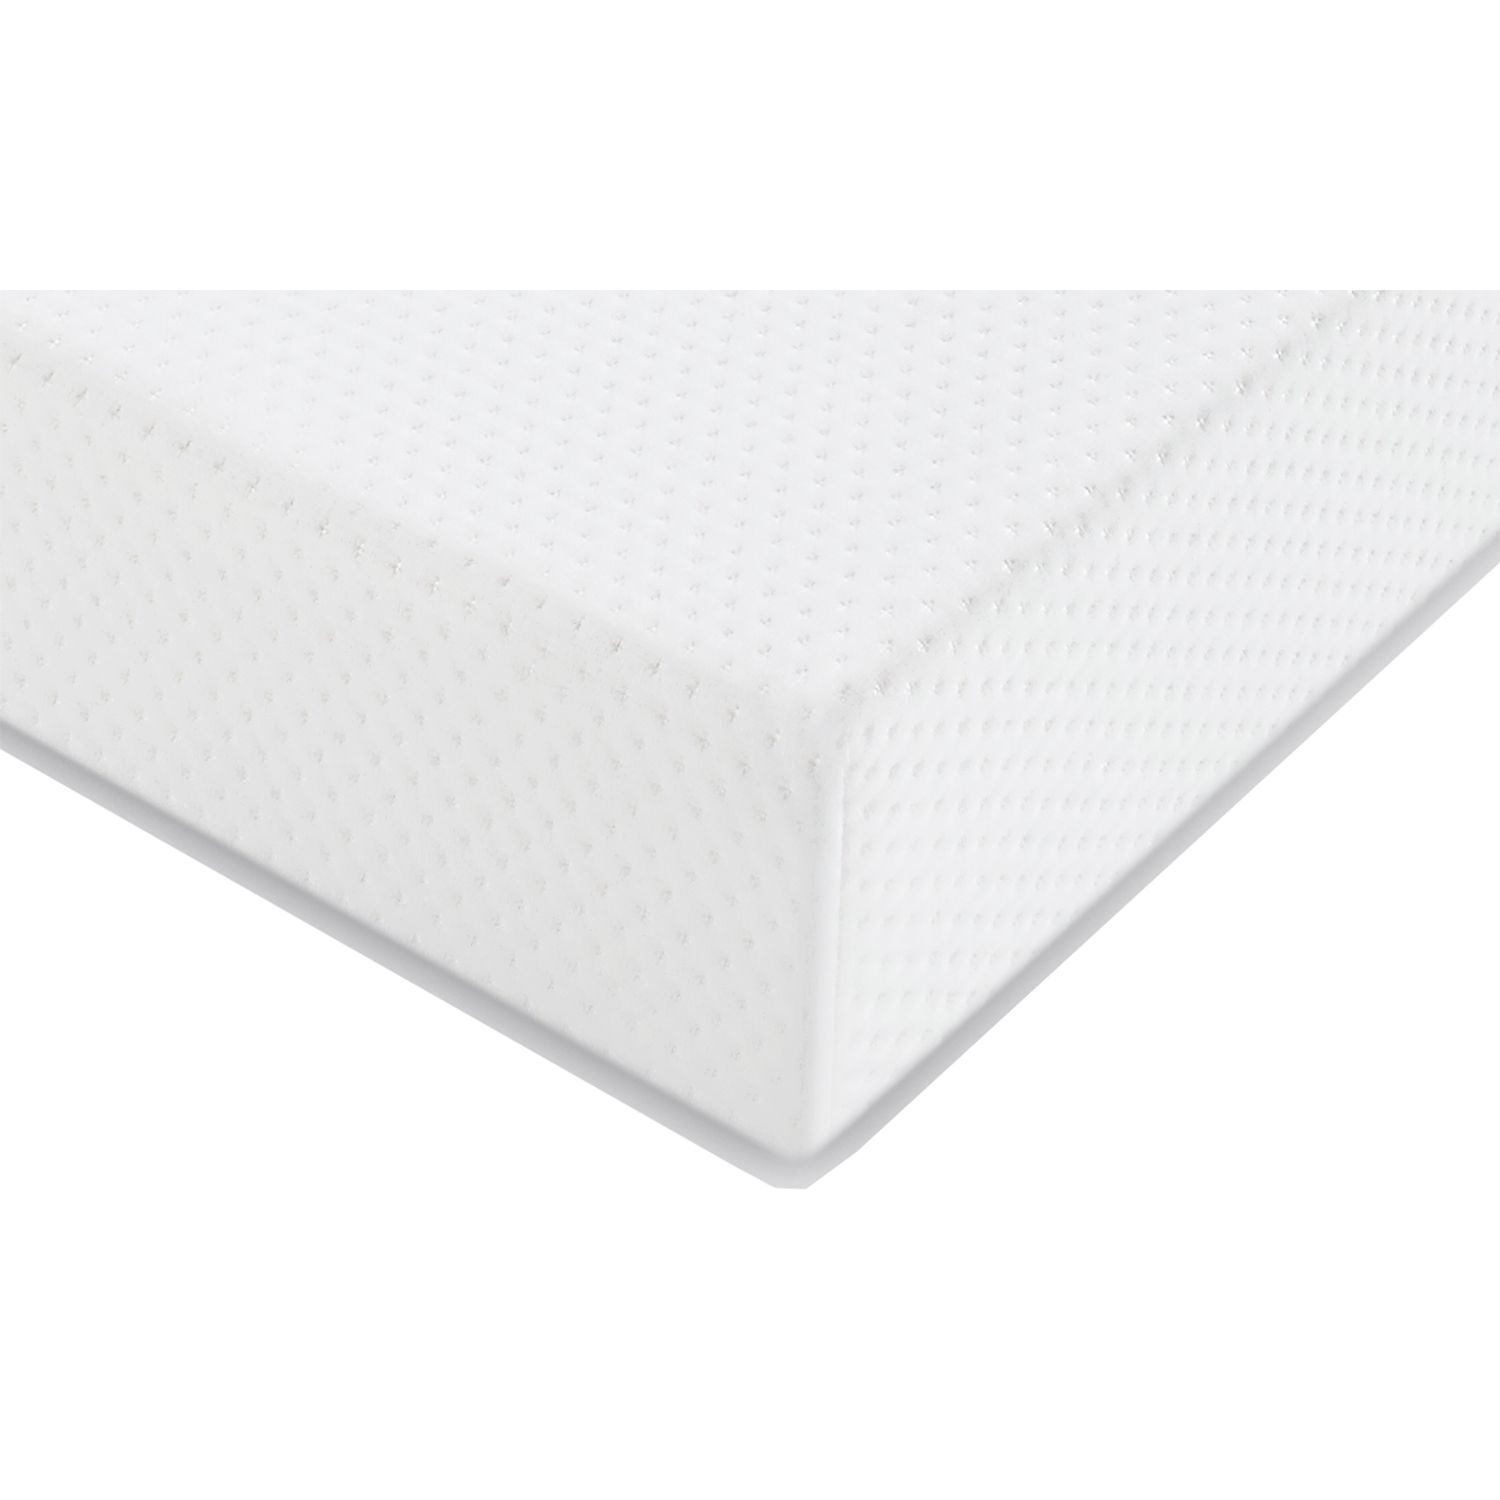 outlet store b1039 99d82 Crib Mattresses | Kohl's